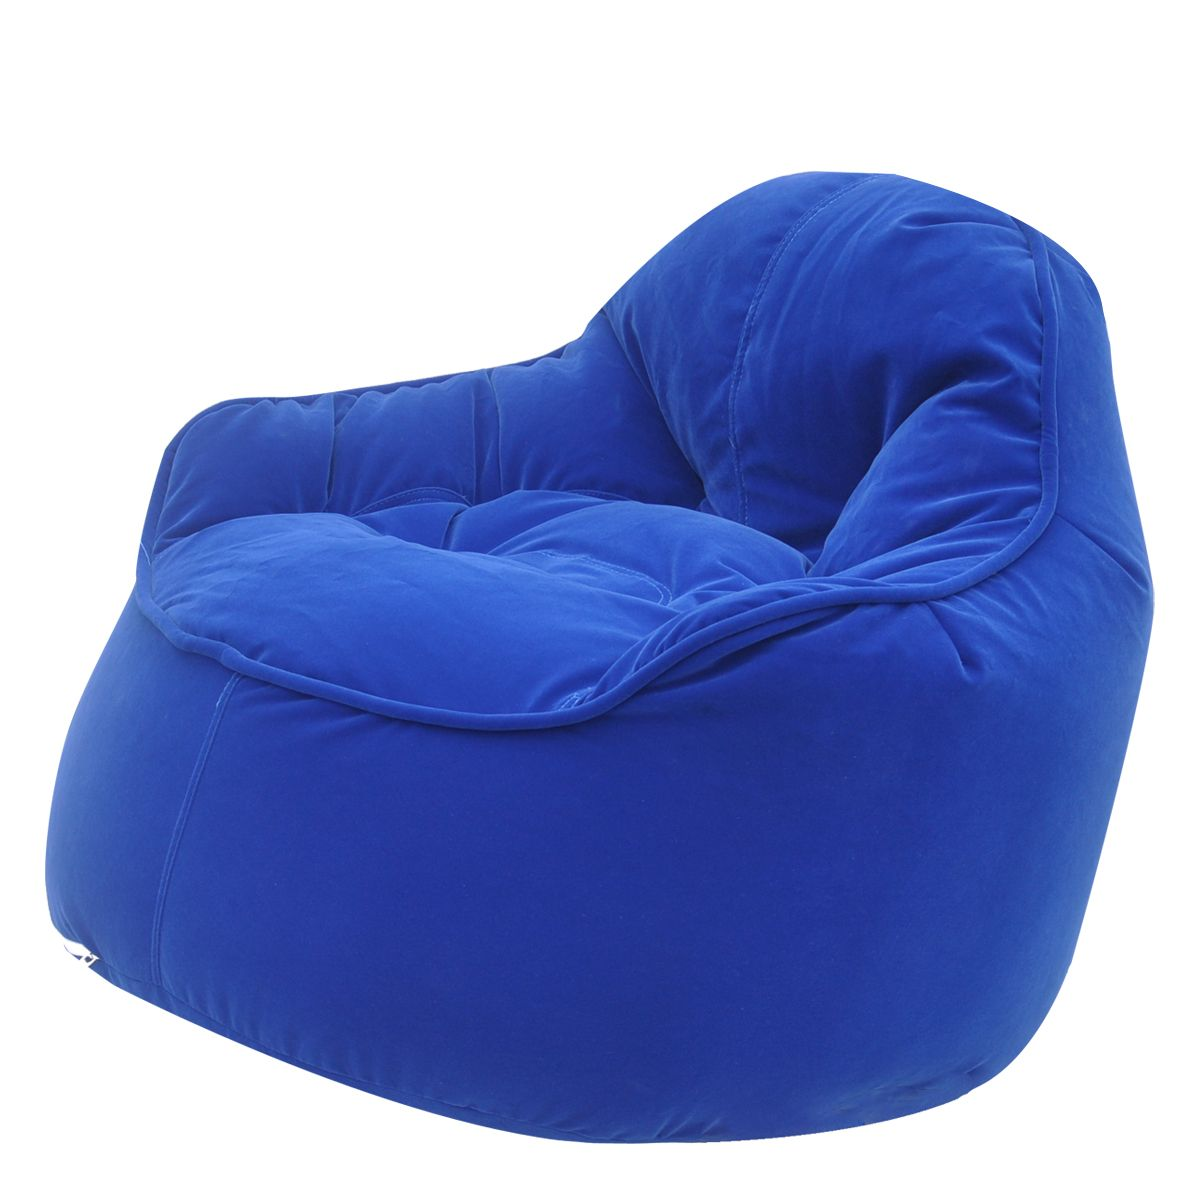 mini bean bag chair tell city rocking products for you and your family Бескаркасная